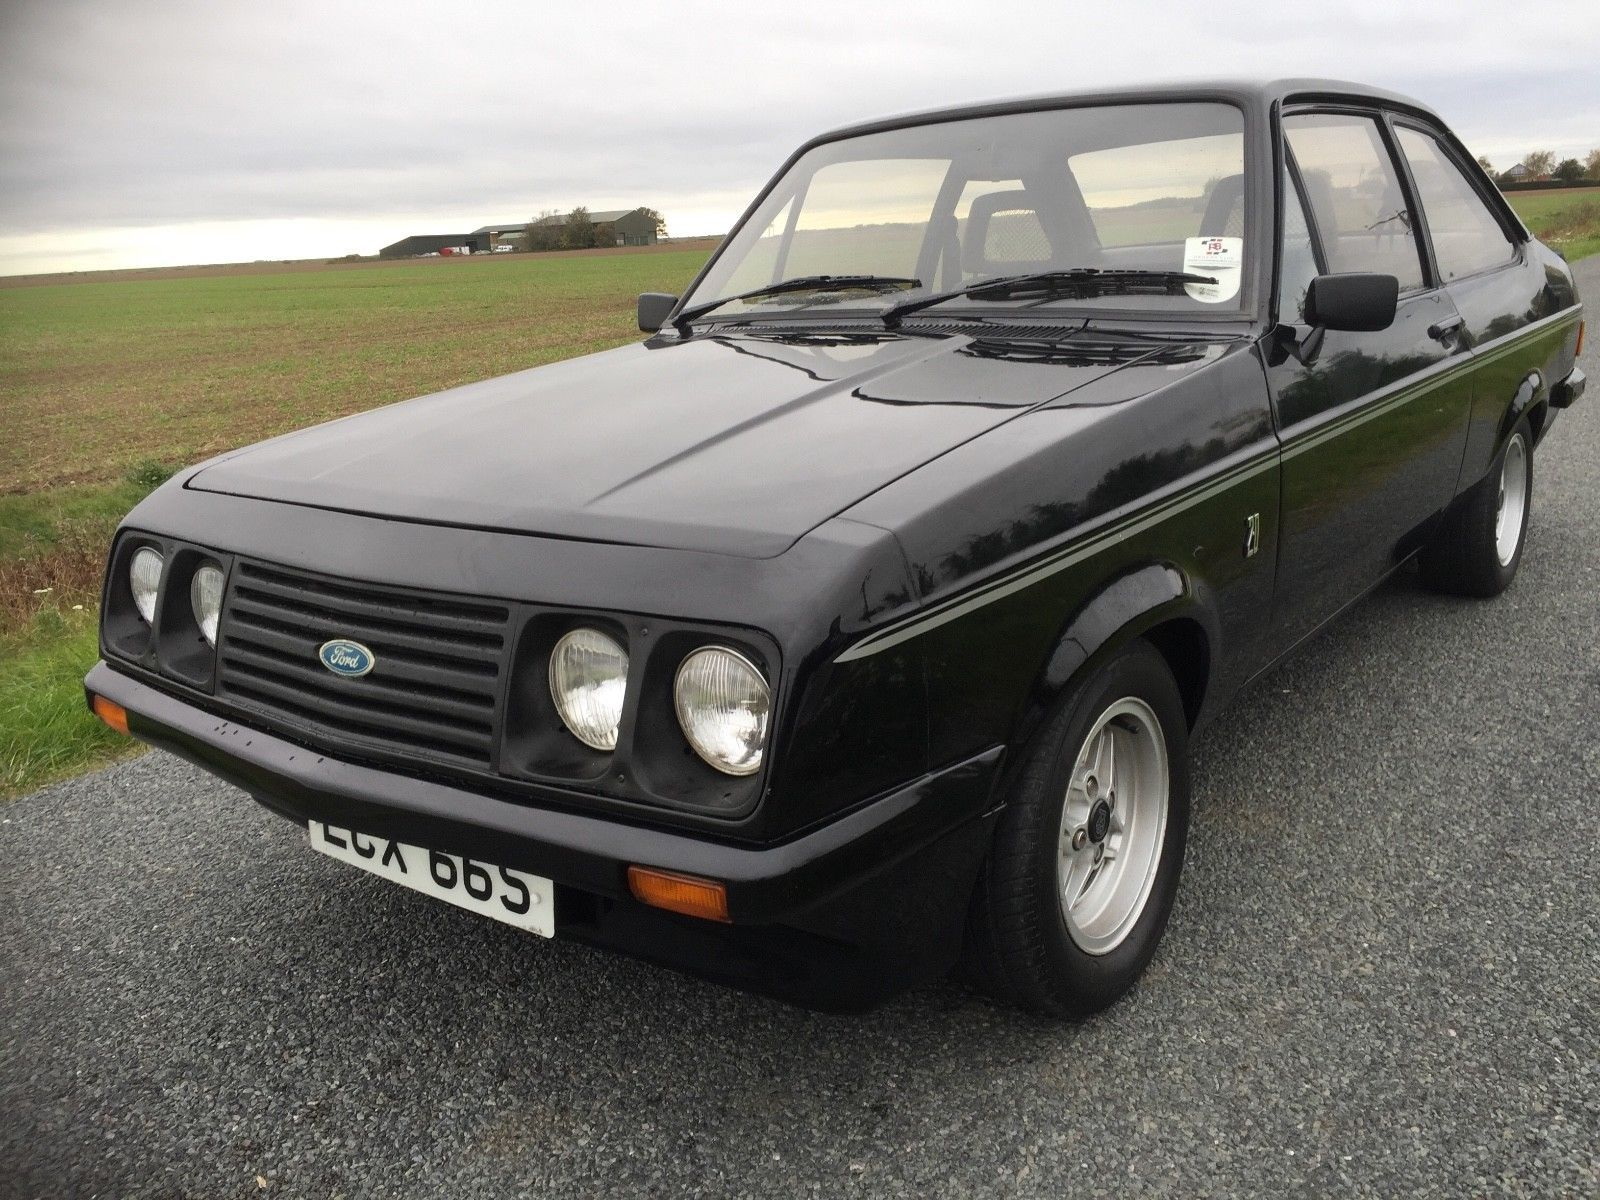 Boston Garage Mot Check Out This Fast Ford Ford Escort Rs2000 Mk2 Excellent